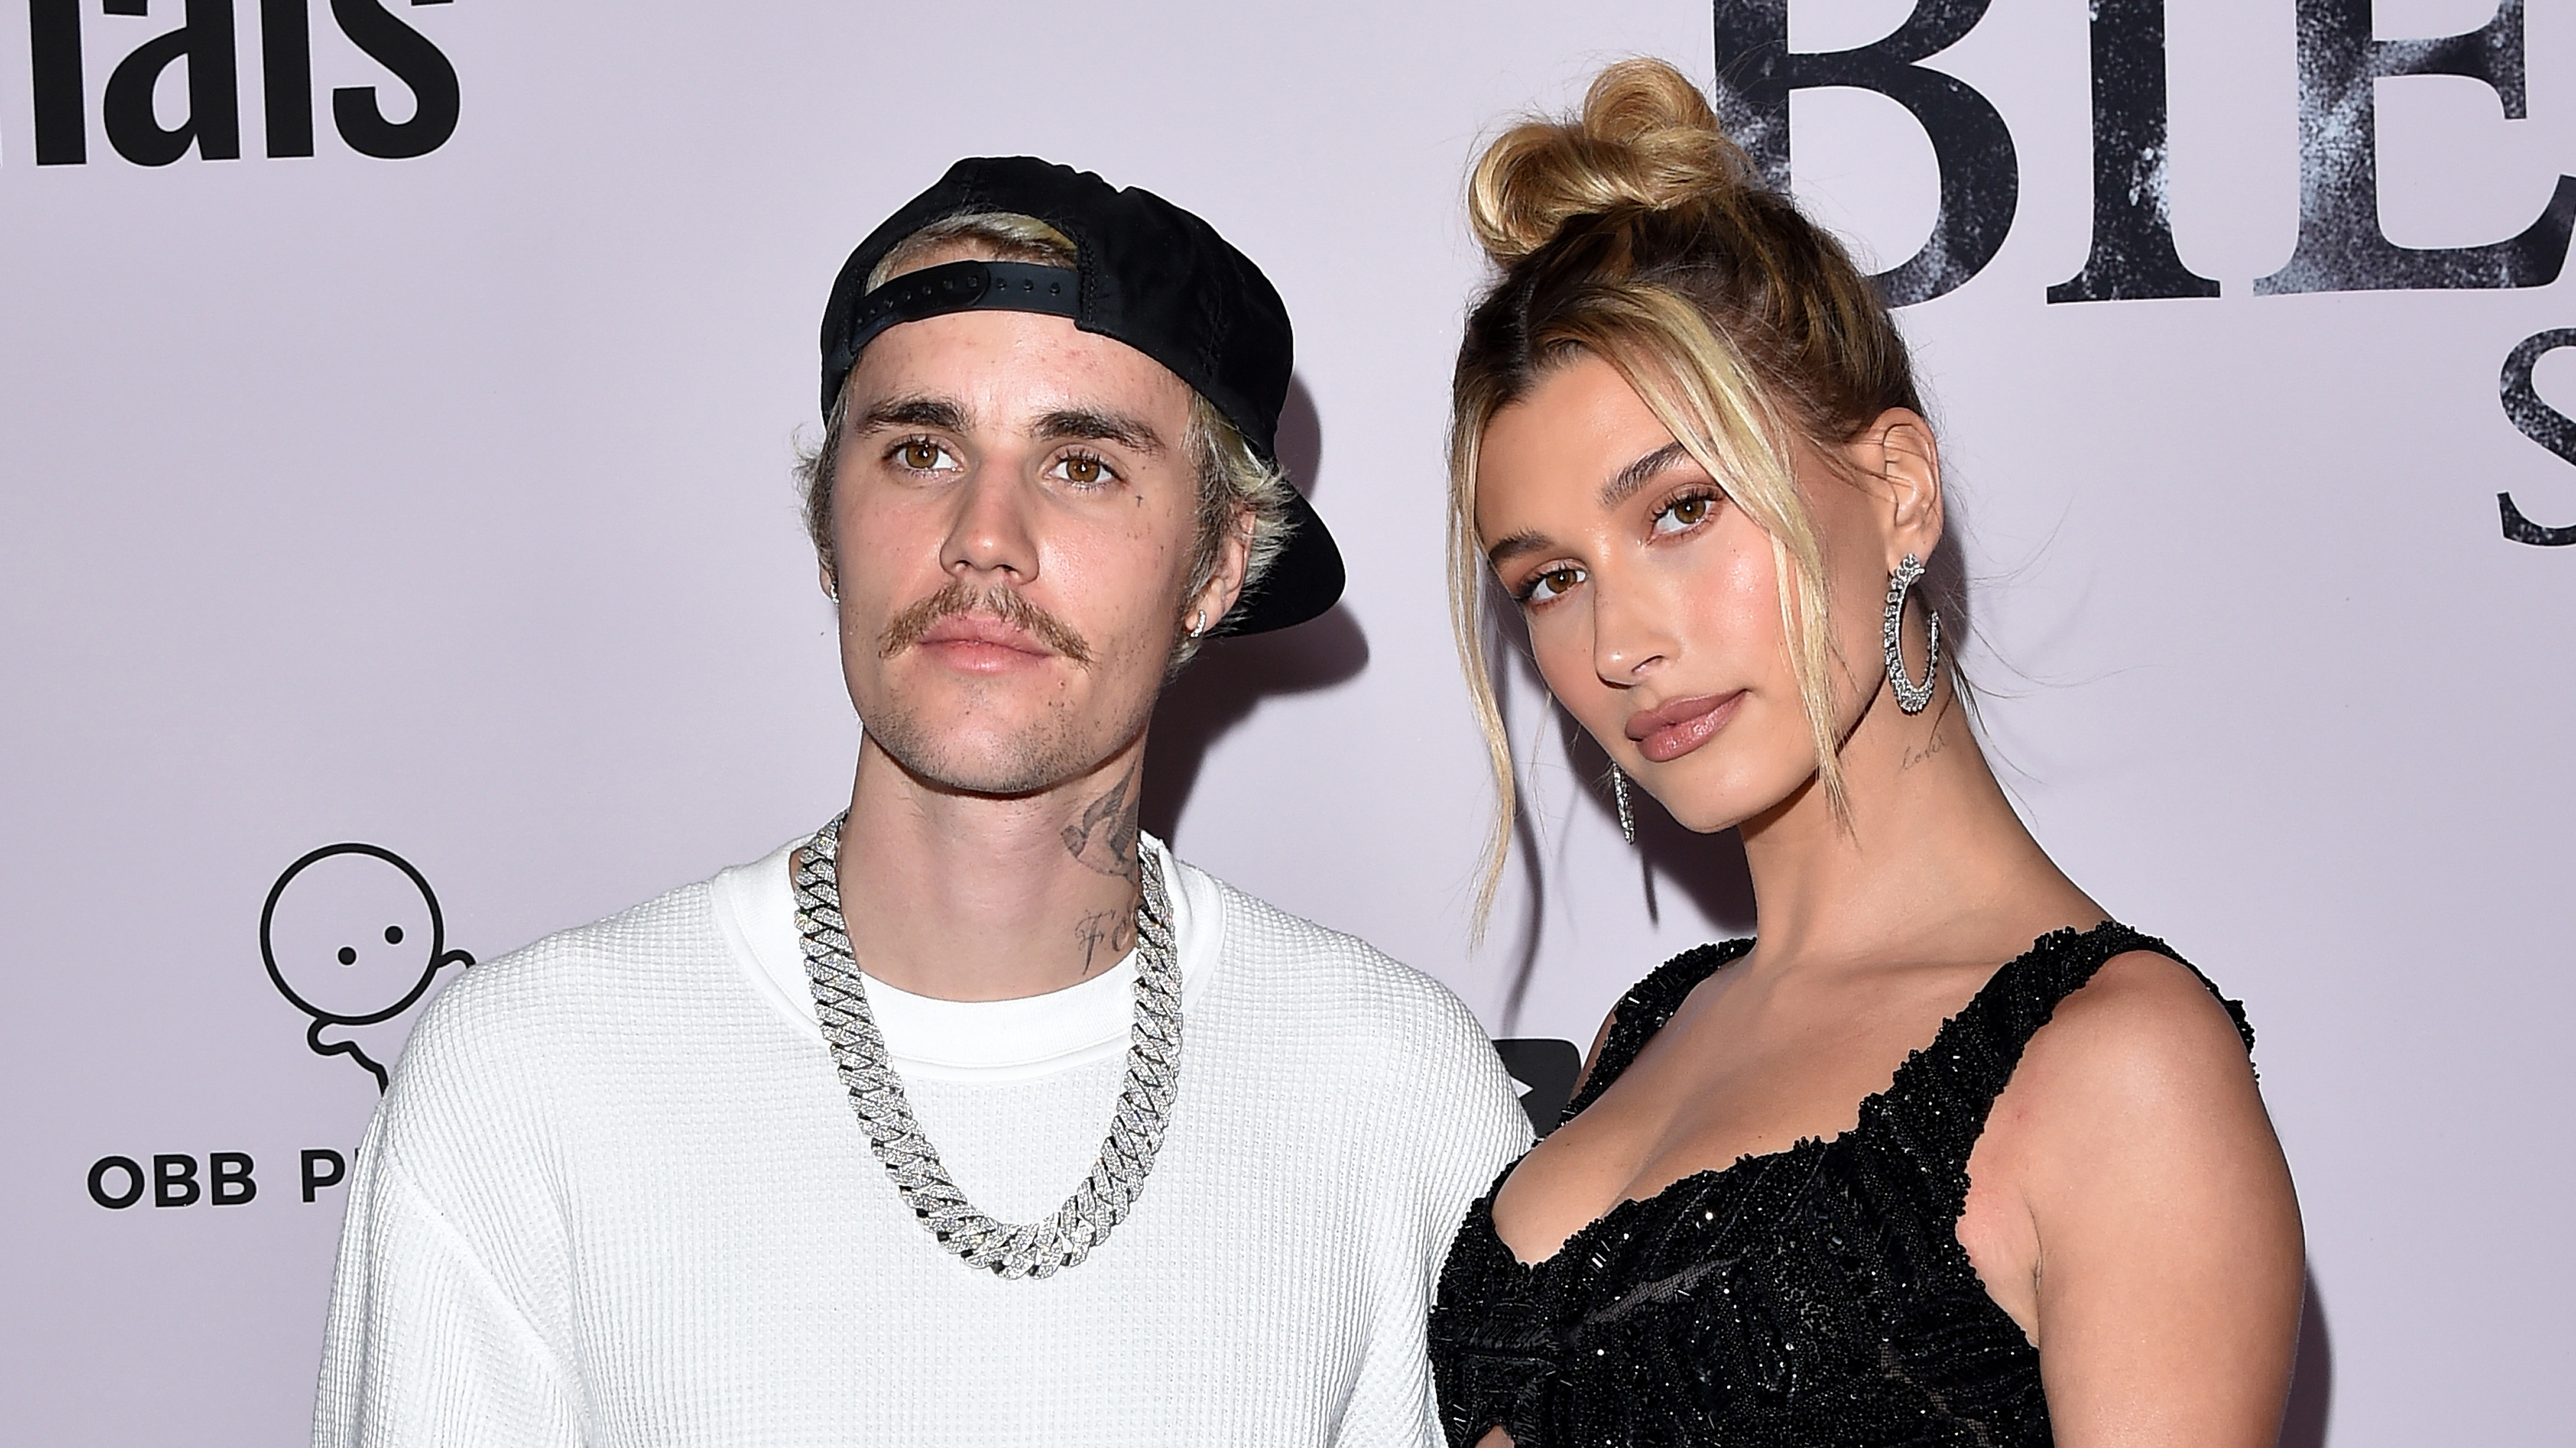 Justin Bieber calls sex life with wife Hailey 'pretty crazy'